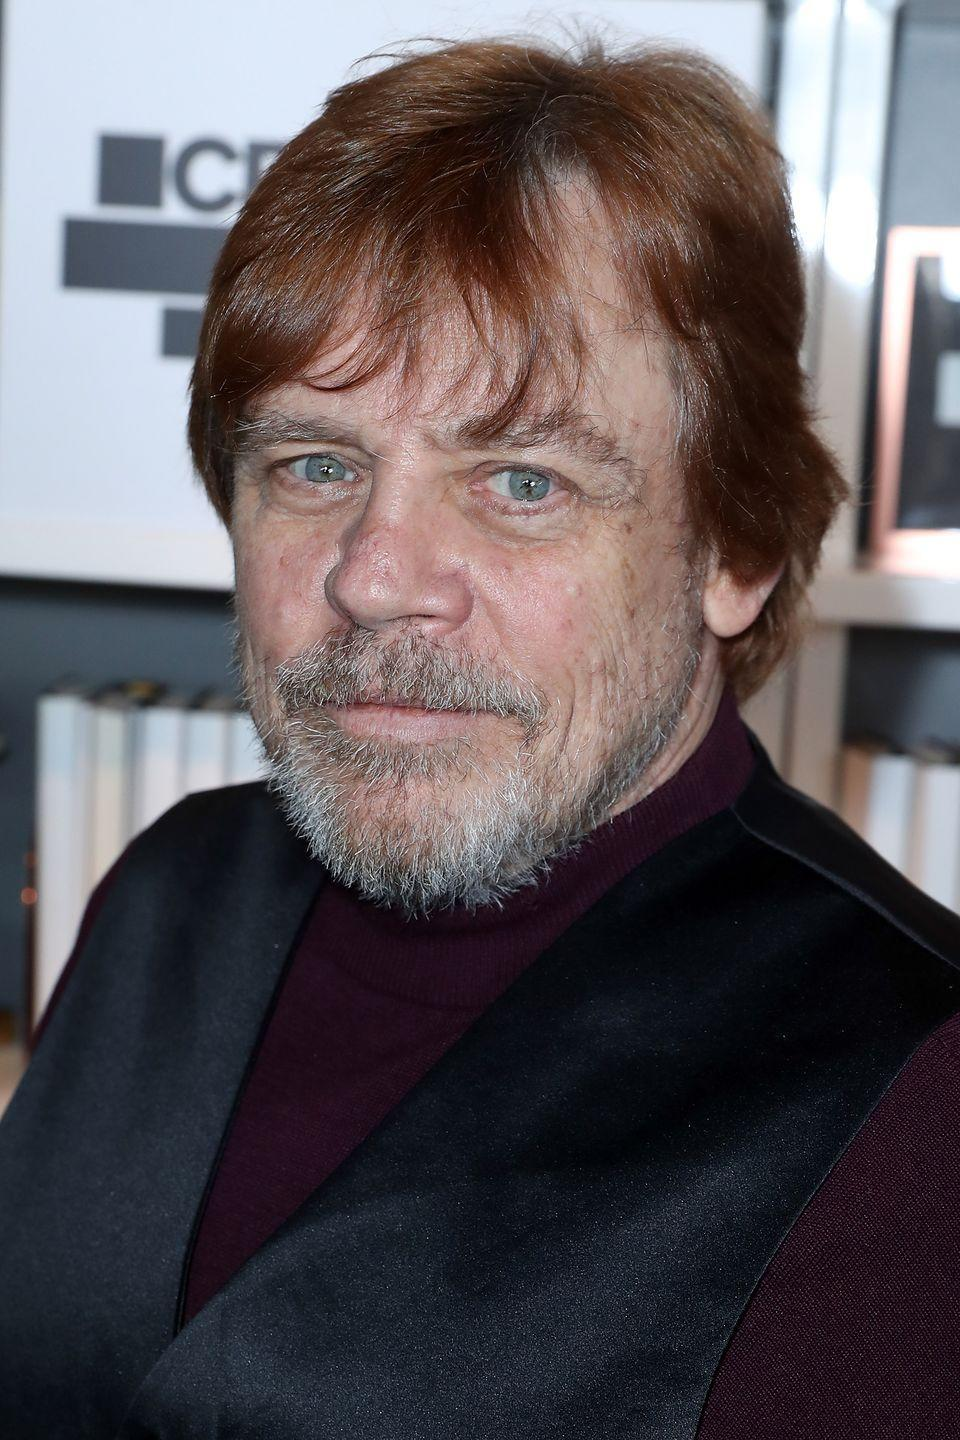 """<p>Who would've guessed that Luke Skywalker used to work at McDonald's? He <a href=""""https://twitter.com/HamillHimself/status/1120730103460220928"""" rel=""""nofollow noopener"""" target=""""_blank"""" data-ylk=""""slk:shared on Twitter"""" class=""""link rapid-noclick-resp"""">shared on Twitter</a> that it was his first job (kind of). """"If you don't count paperboy, the time I was hired to play Santa's helper in a department store or the countless backyard puppet/magic/ventriloquist shows I did... My 1st real job WAS at McDonald's in Annandale Virginia when I was 16,"""" he wrote.</p>"""